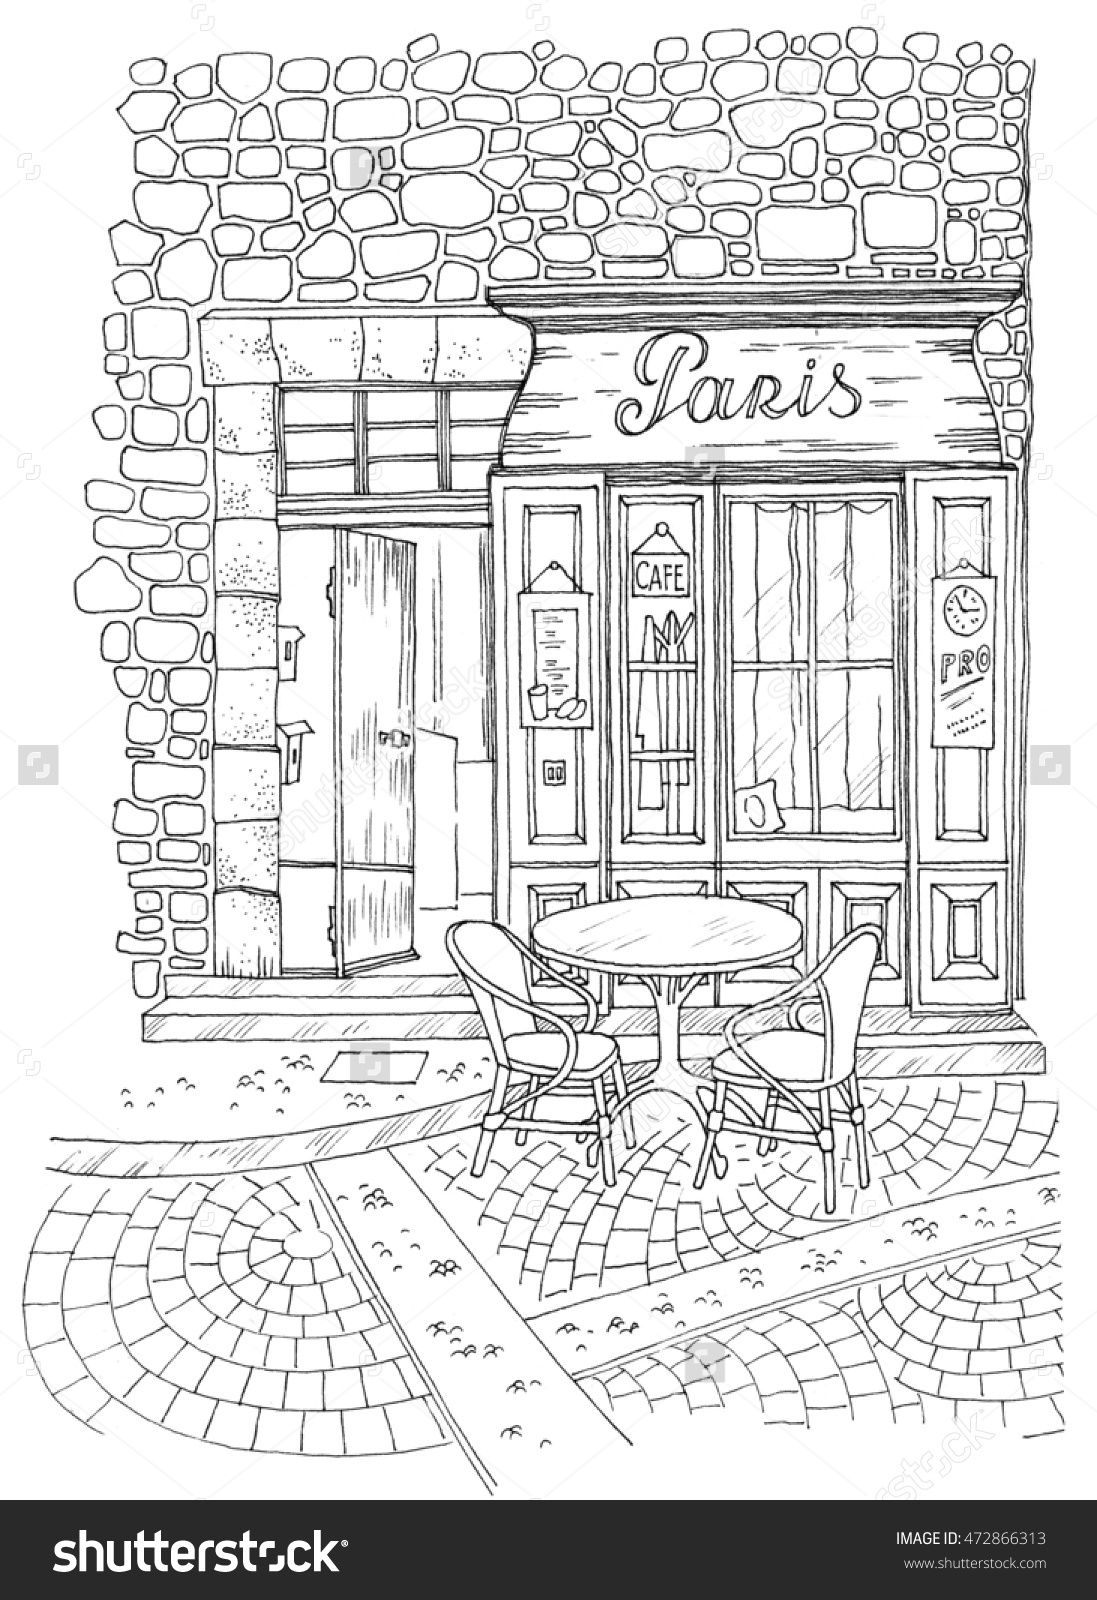 Pin on Zentangles ~ Adult Colouring Coloring Pages